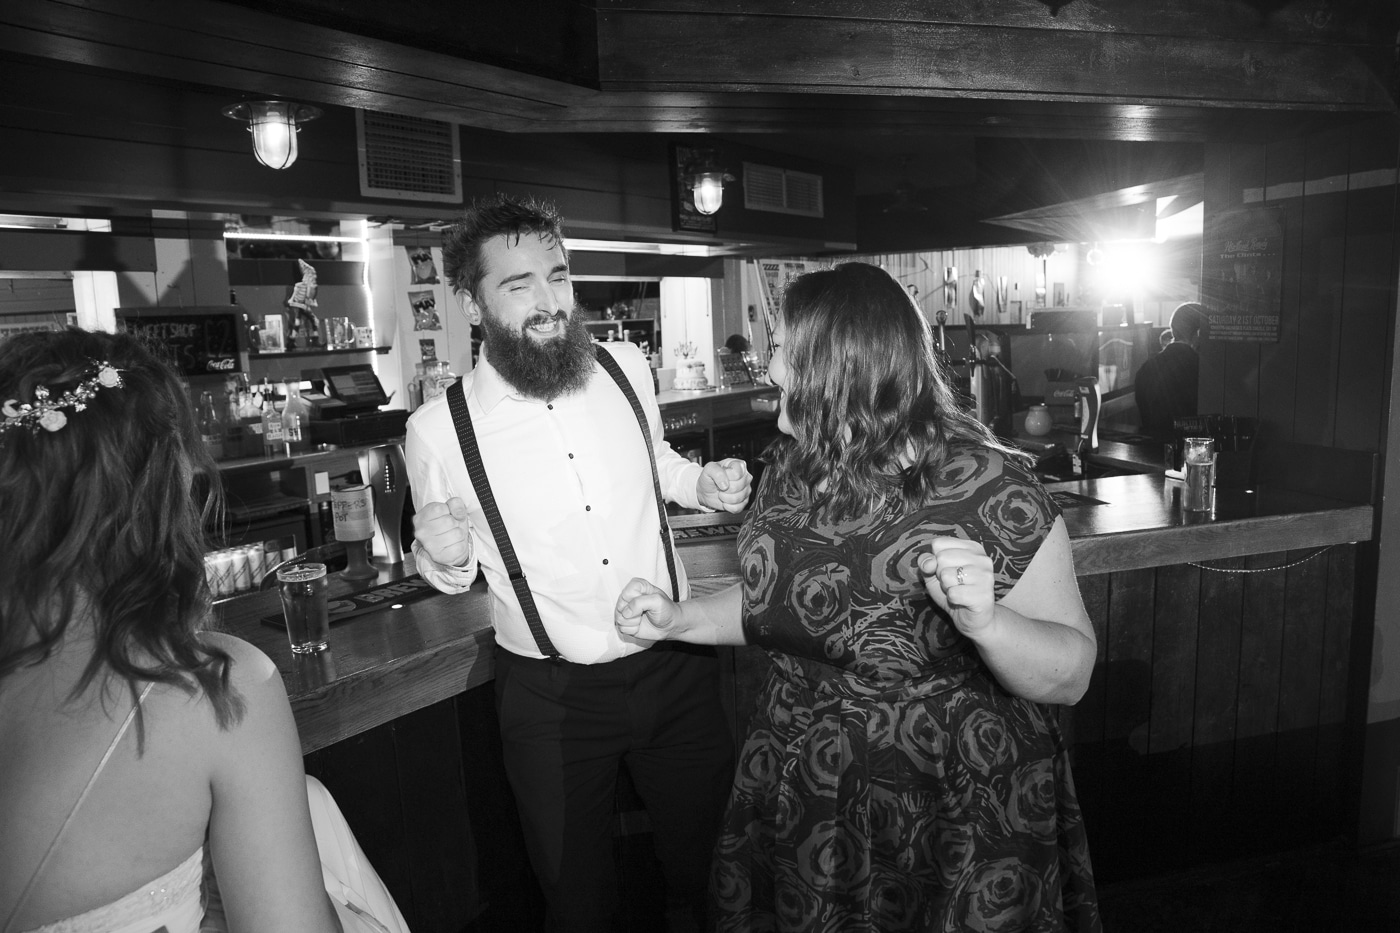 Dancing with guests by Joshua Wyborn Photographic